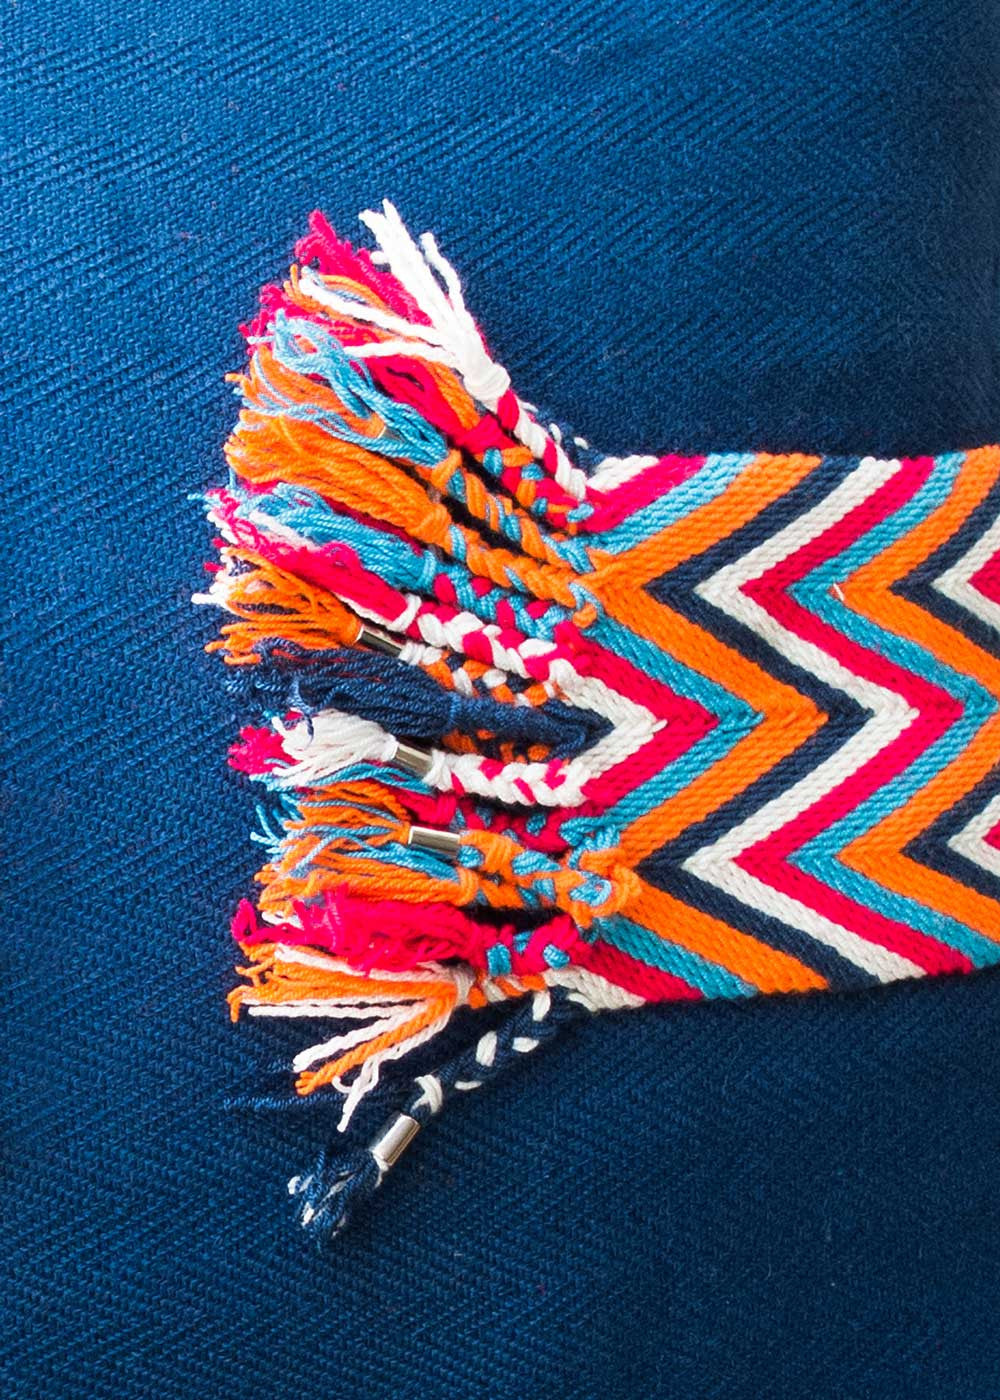 Hilo Sagrado Wayuu Belt Pillow